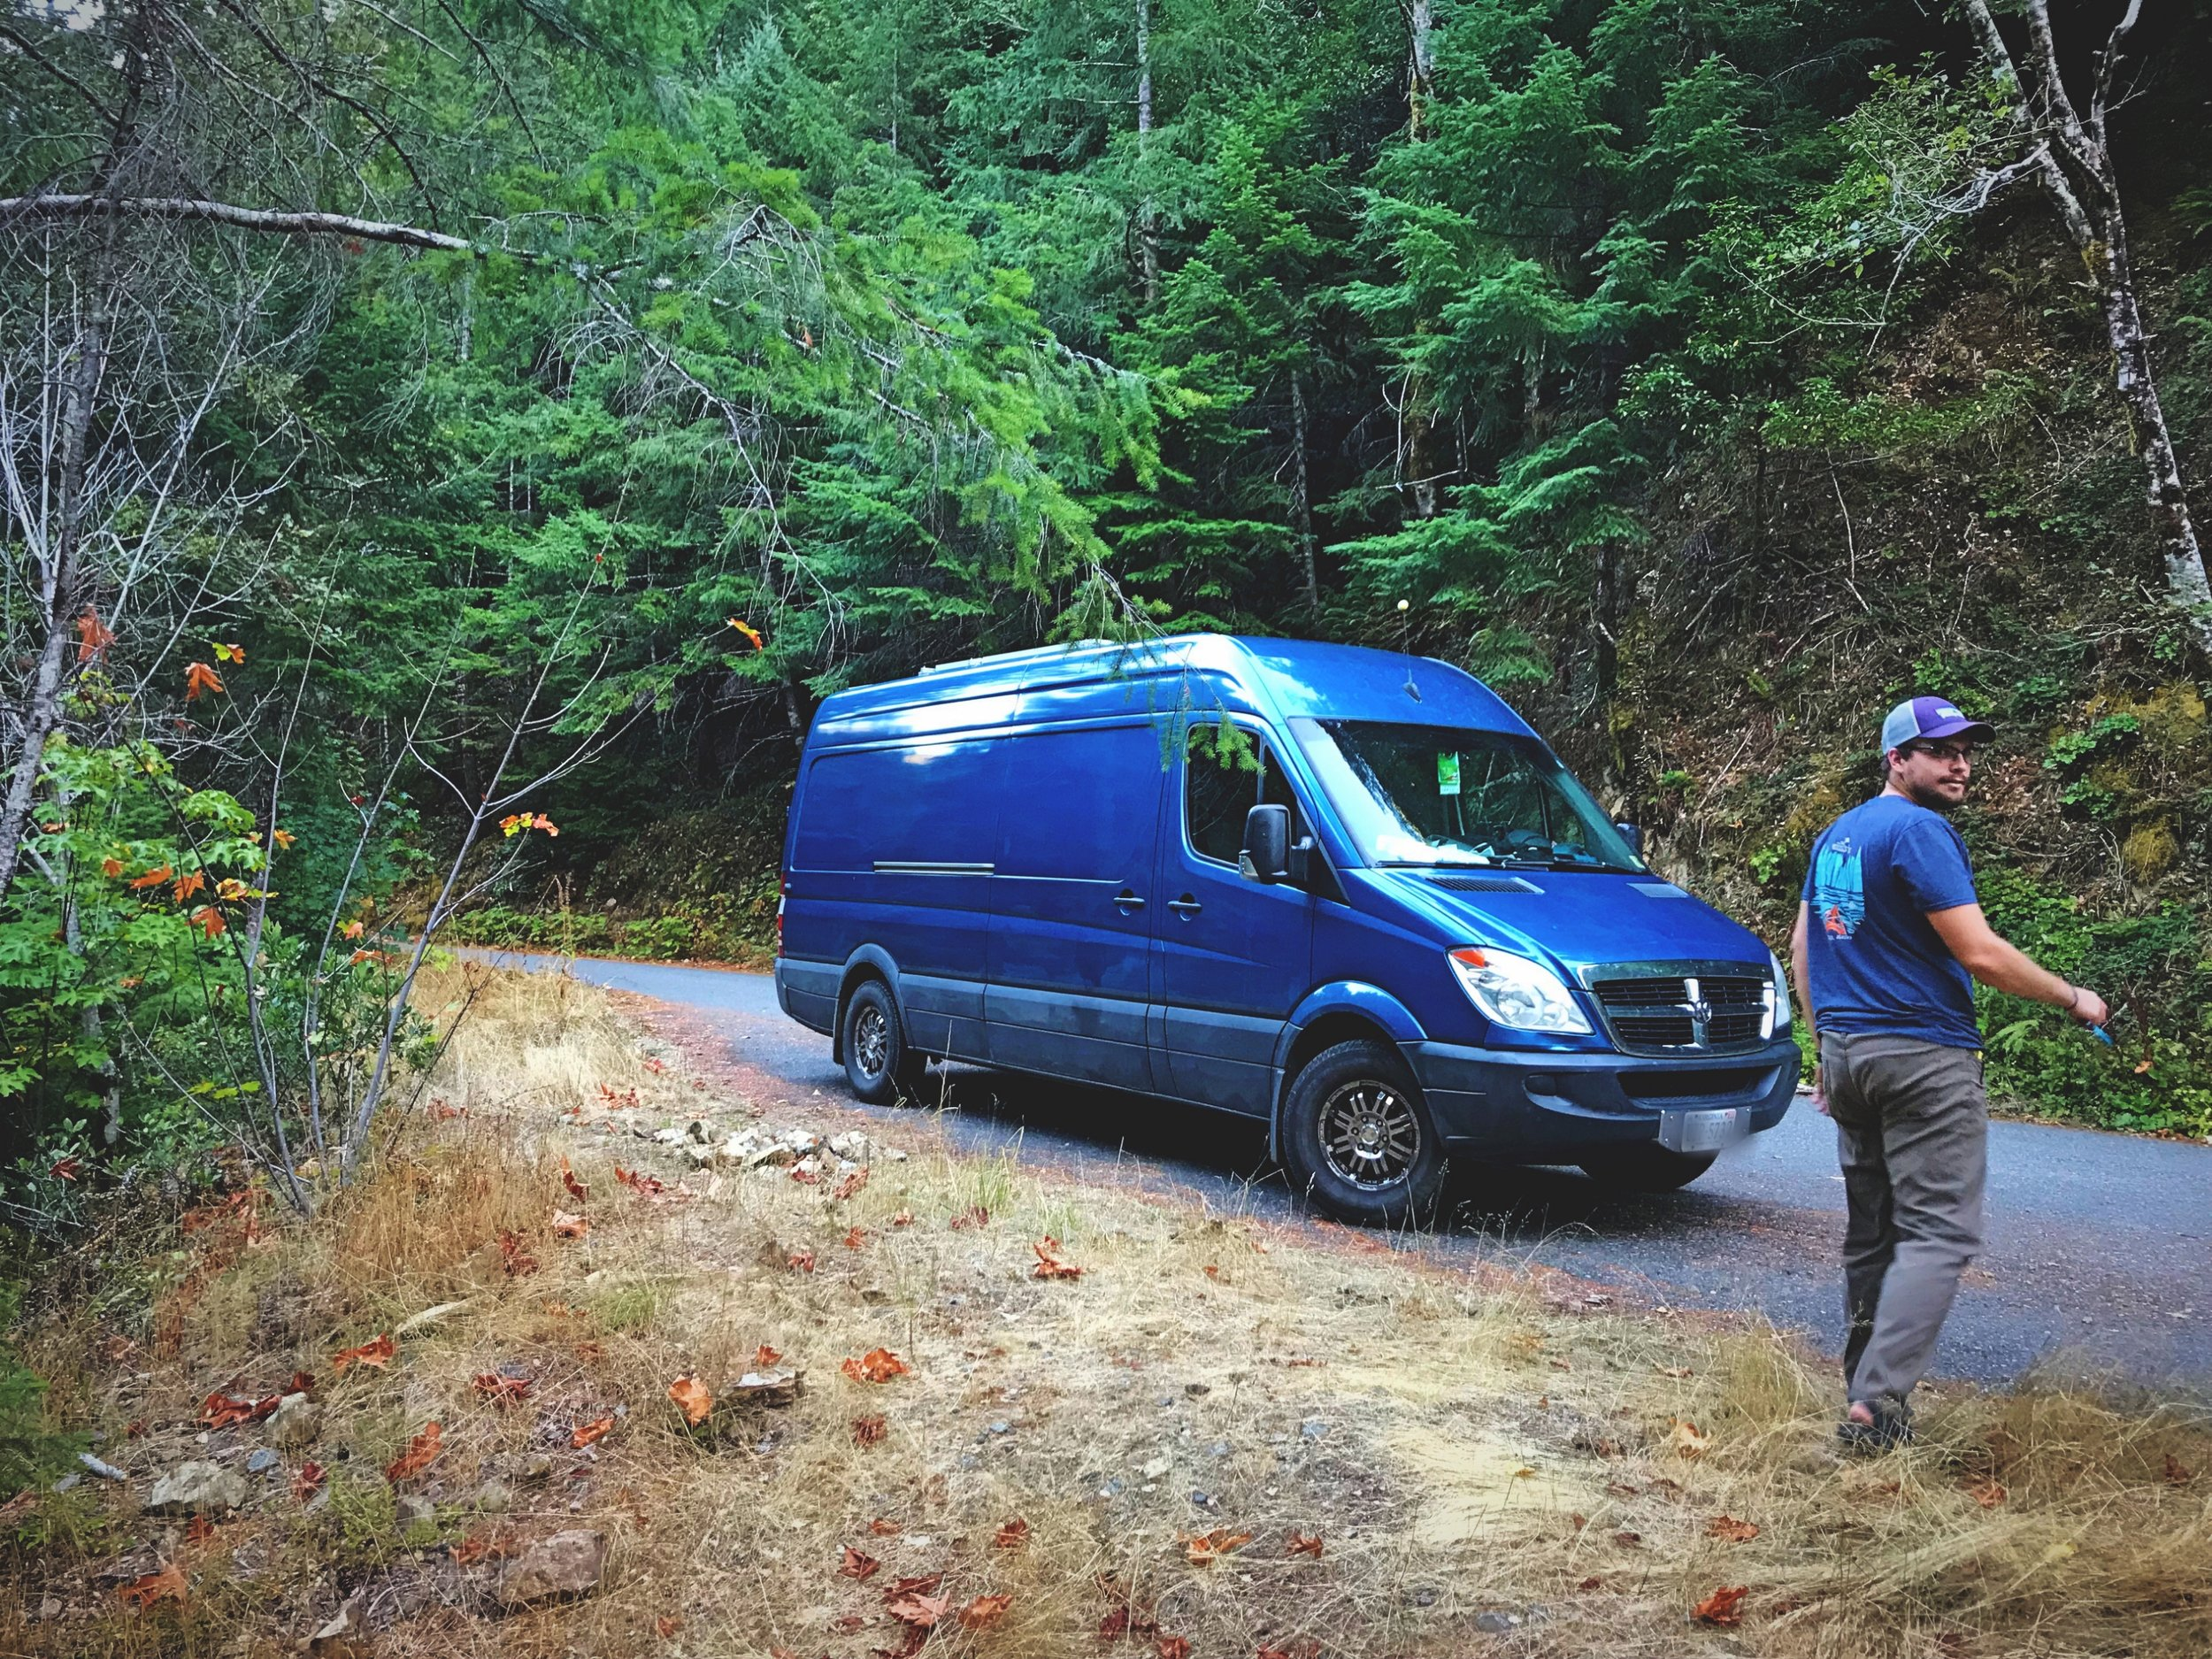 A dispersed camping spot on a forest service road in the Siuslaw National Forest.